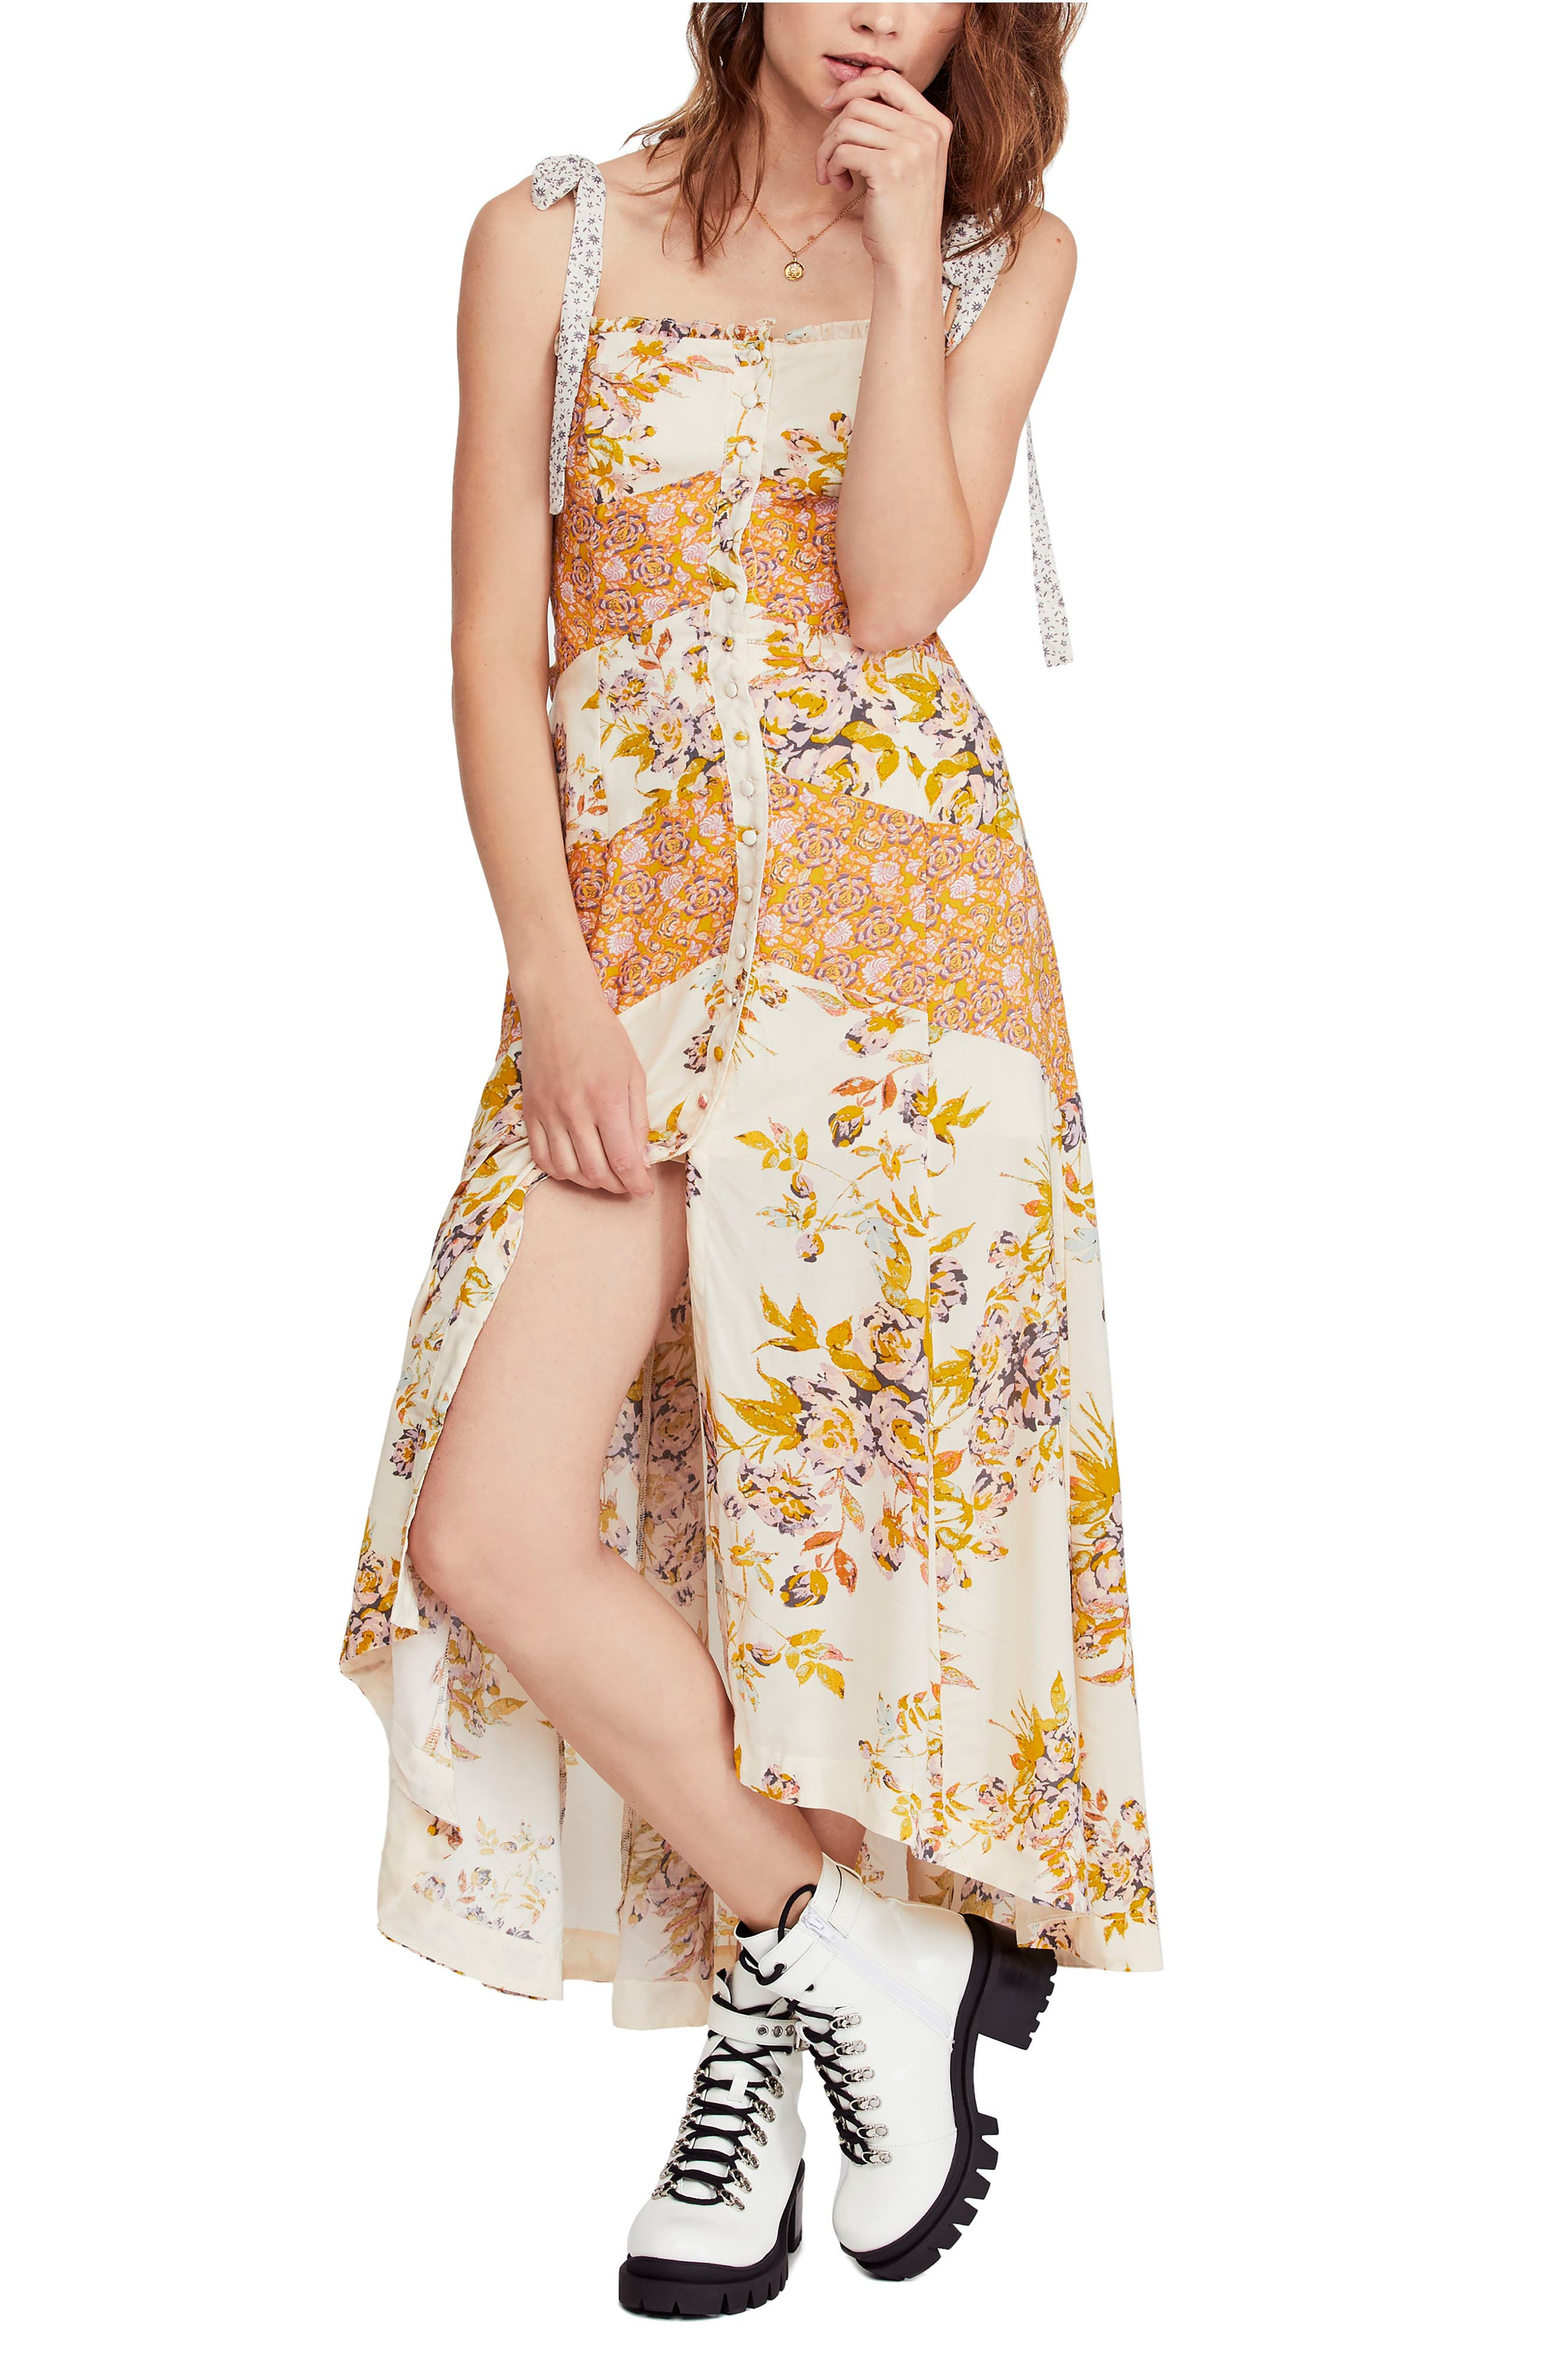 FREE PEOPLE Lover Boy Maxi Dress, Main, color, NEUTRAL COMBO